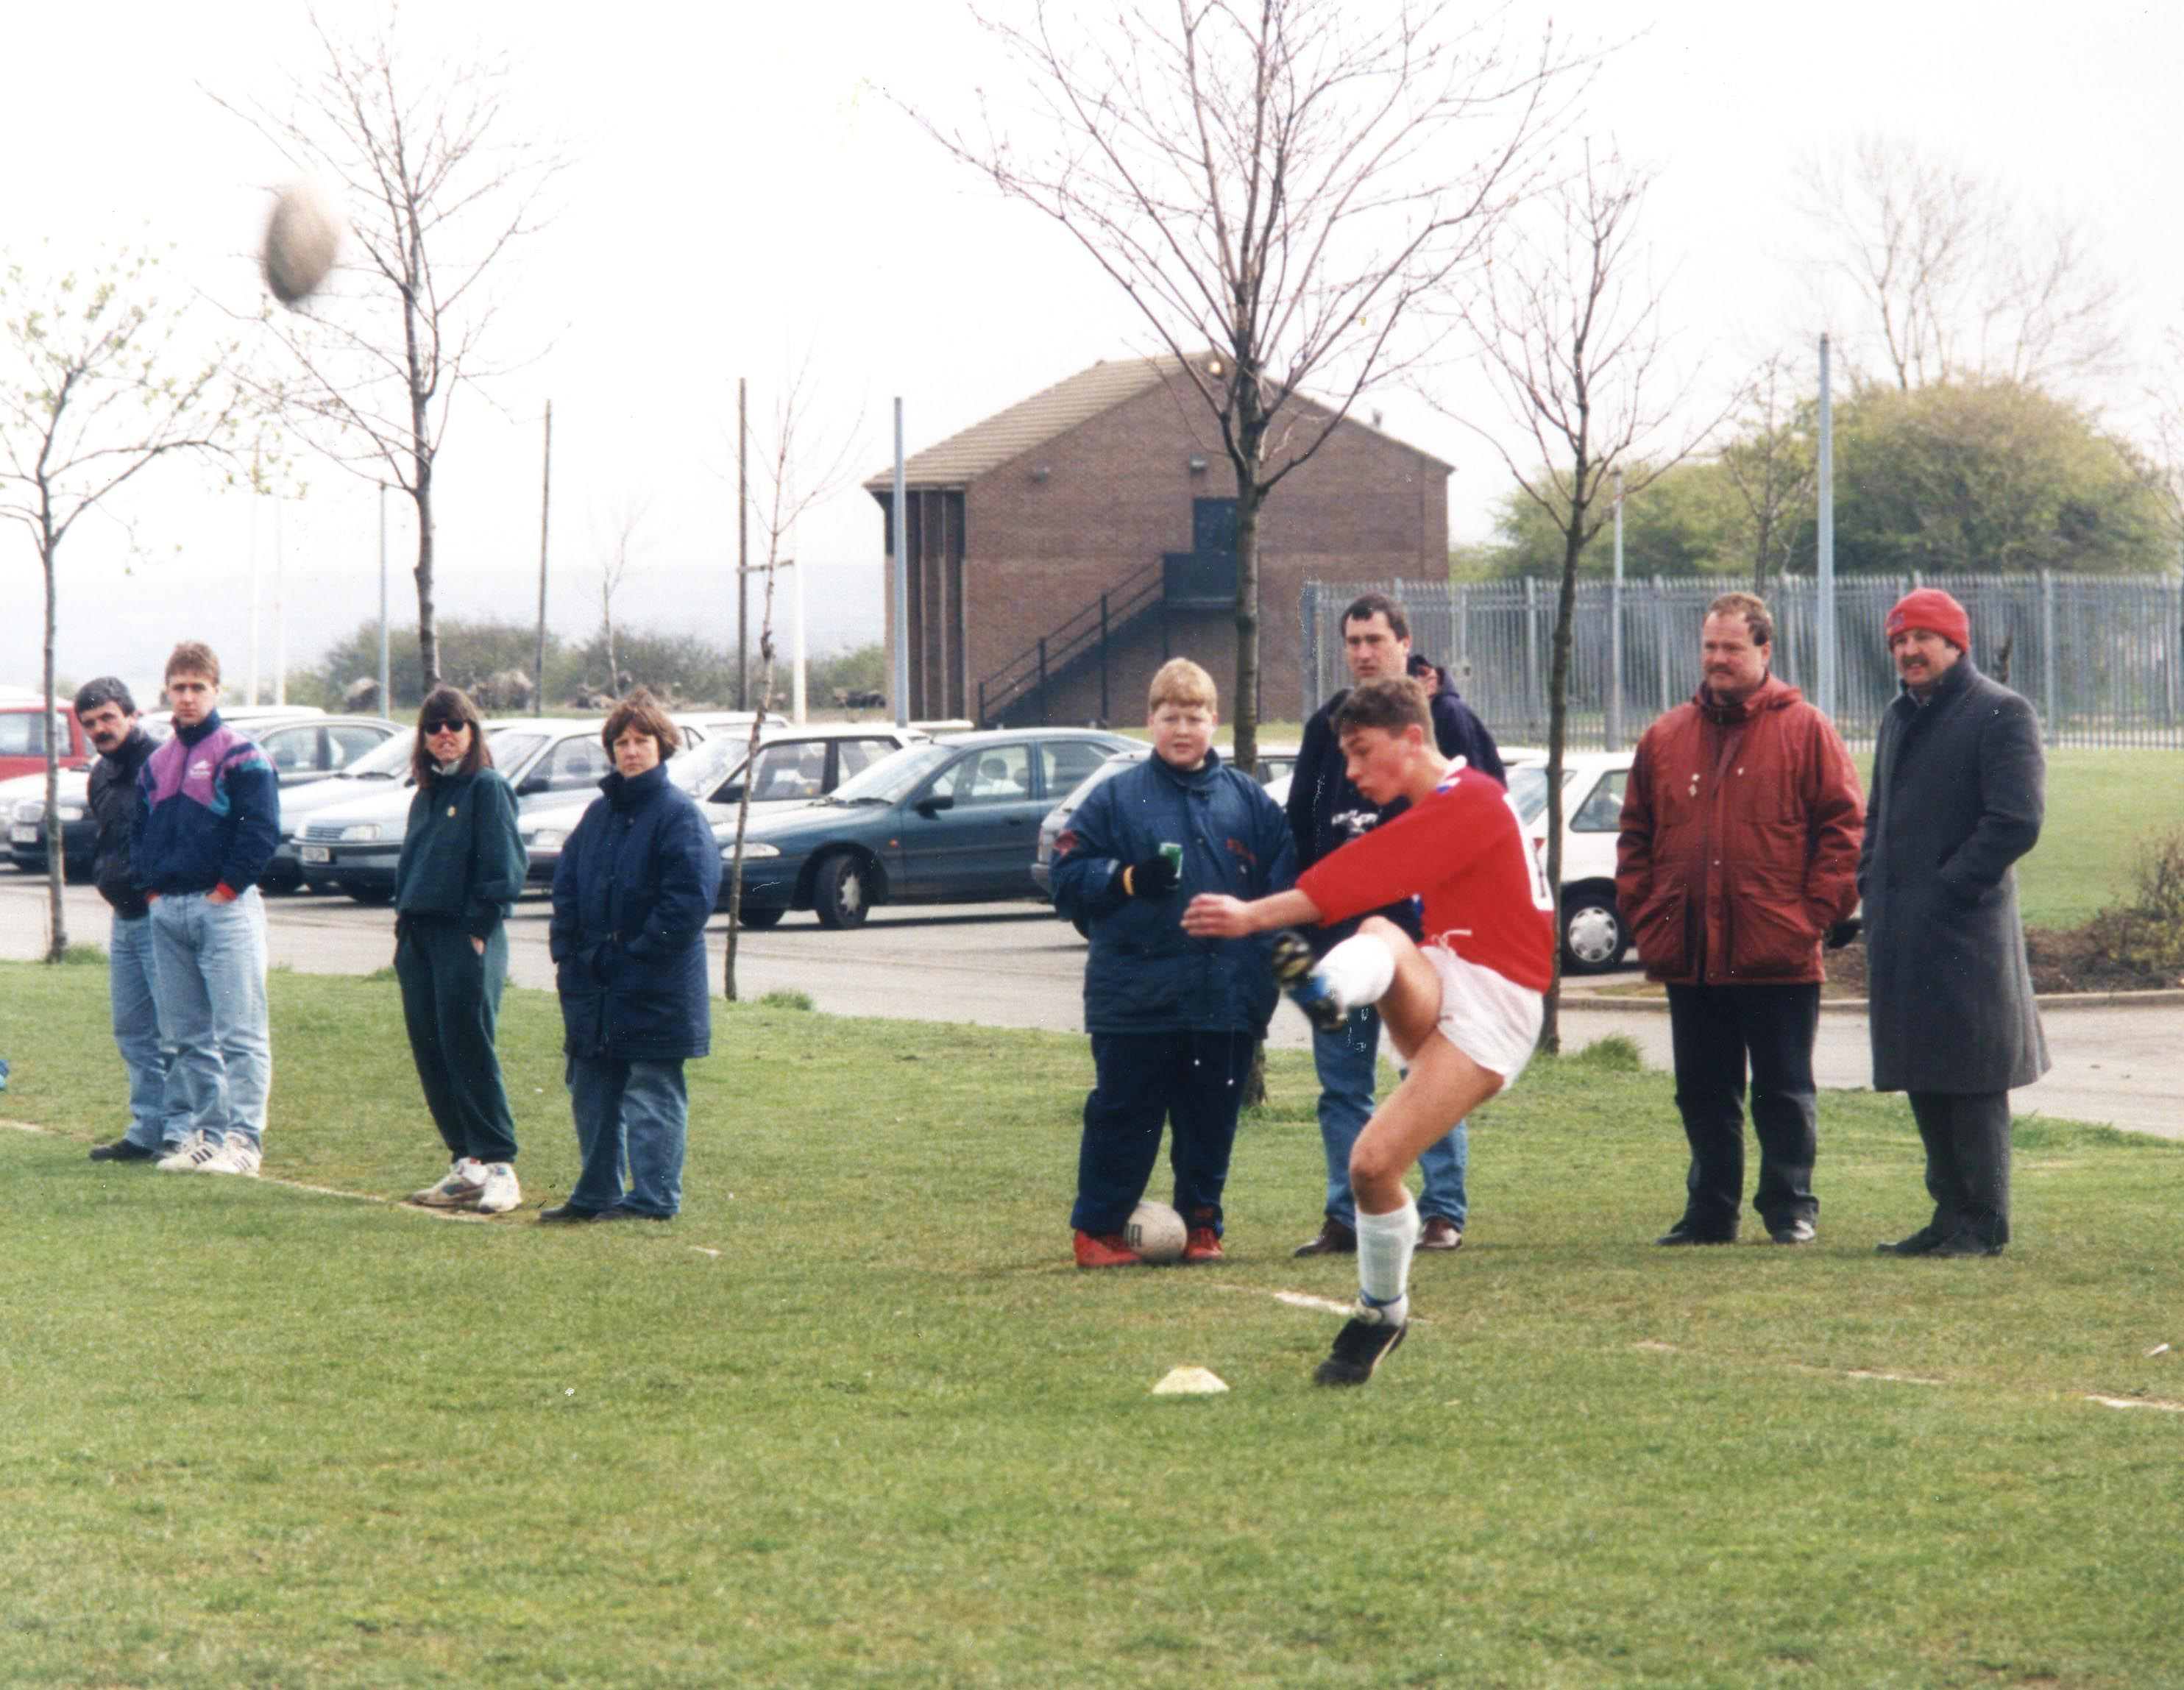 Kevin gets in some kicking practise as a schoolboy